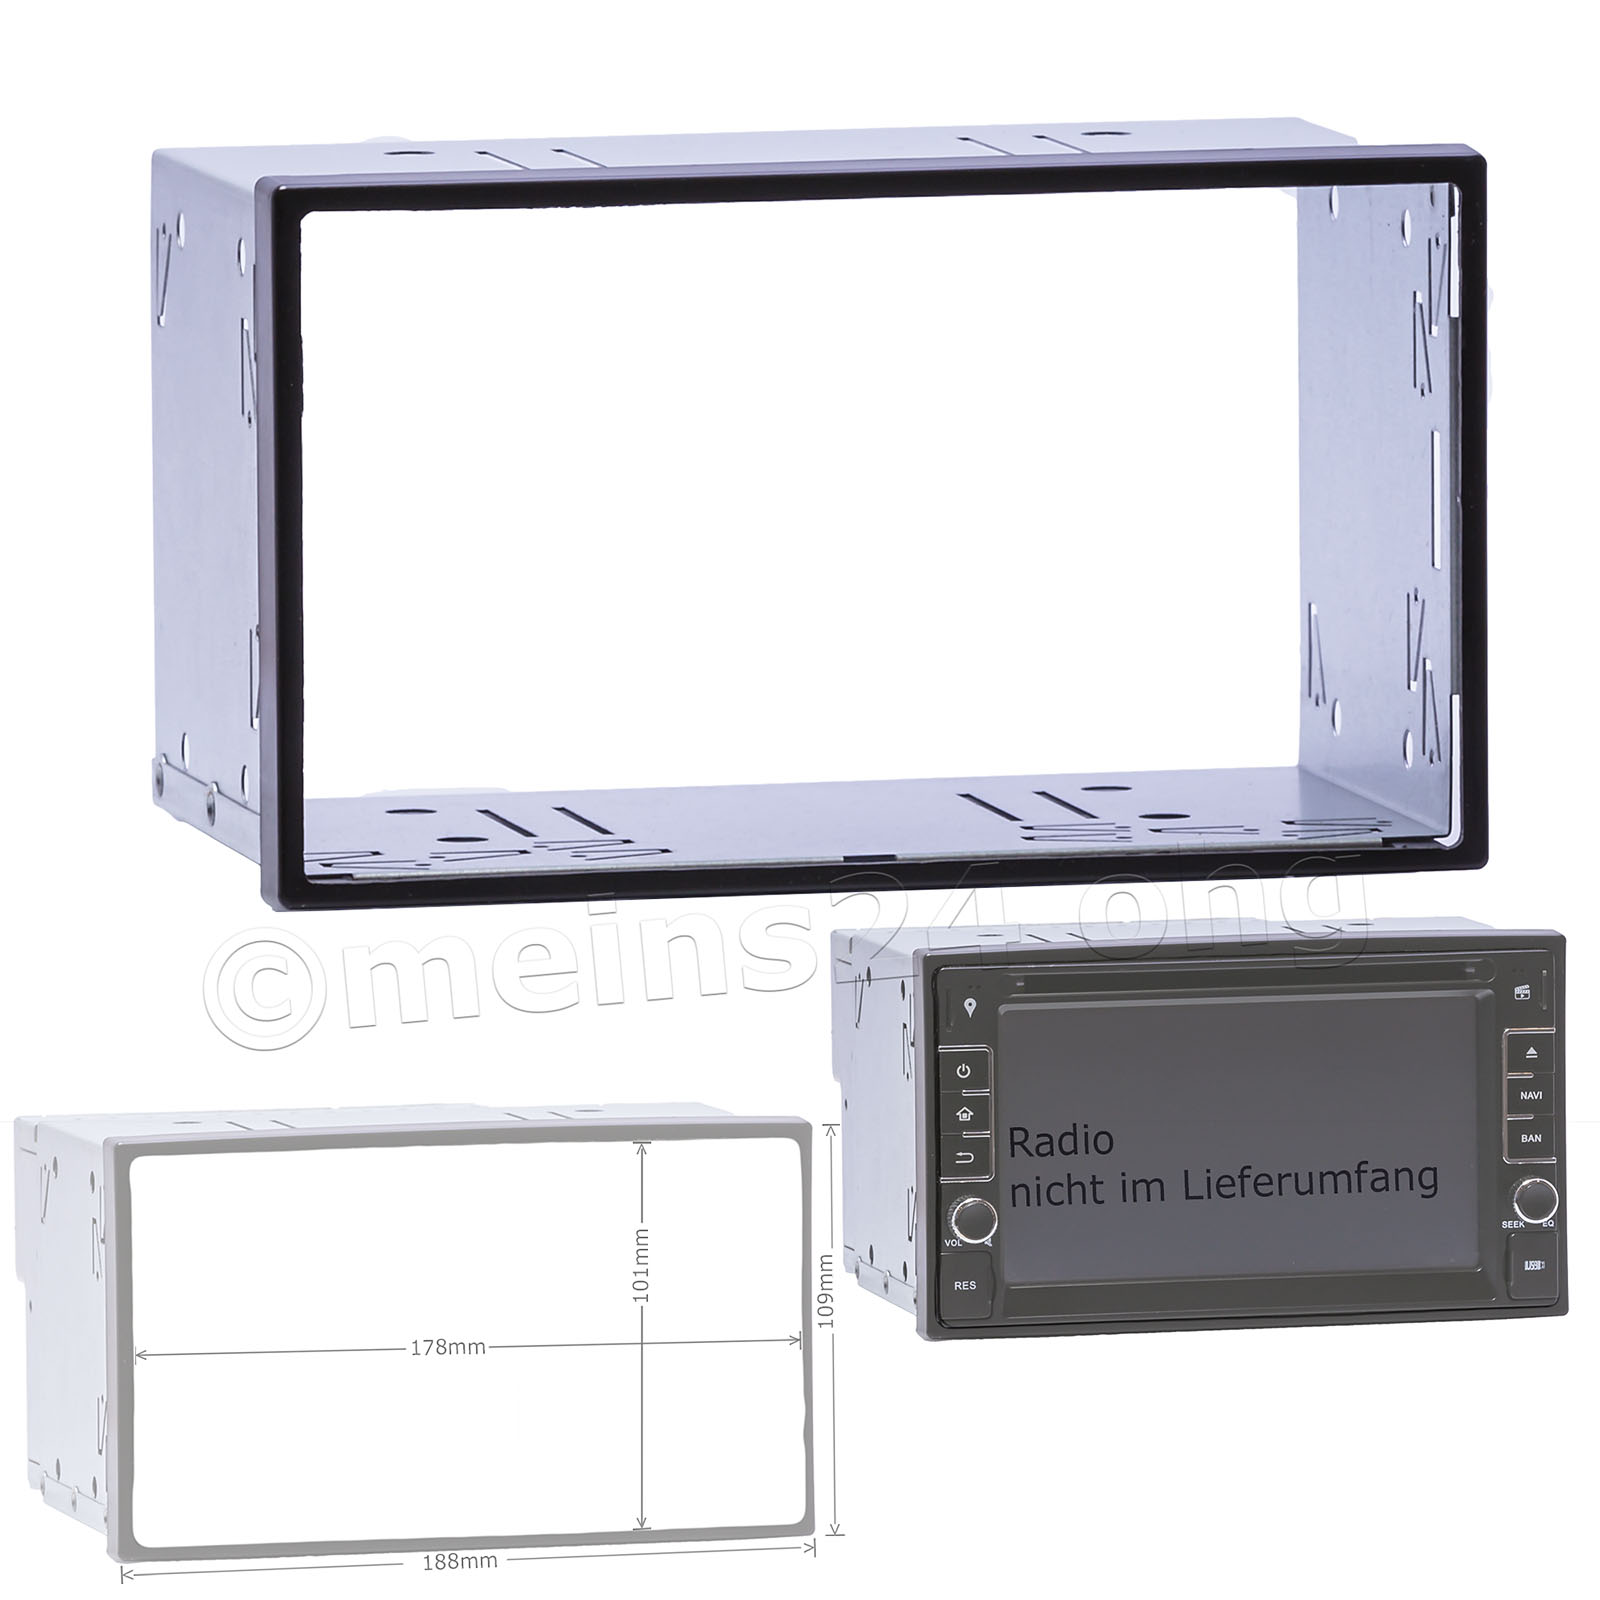 Doppel 2 DIN Einbauschacht universal ready for XL-Display